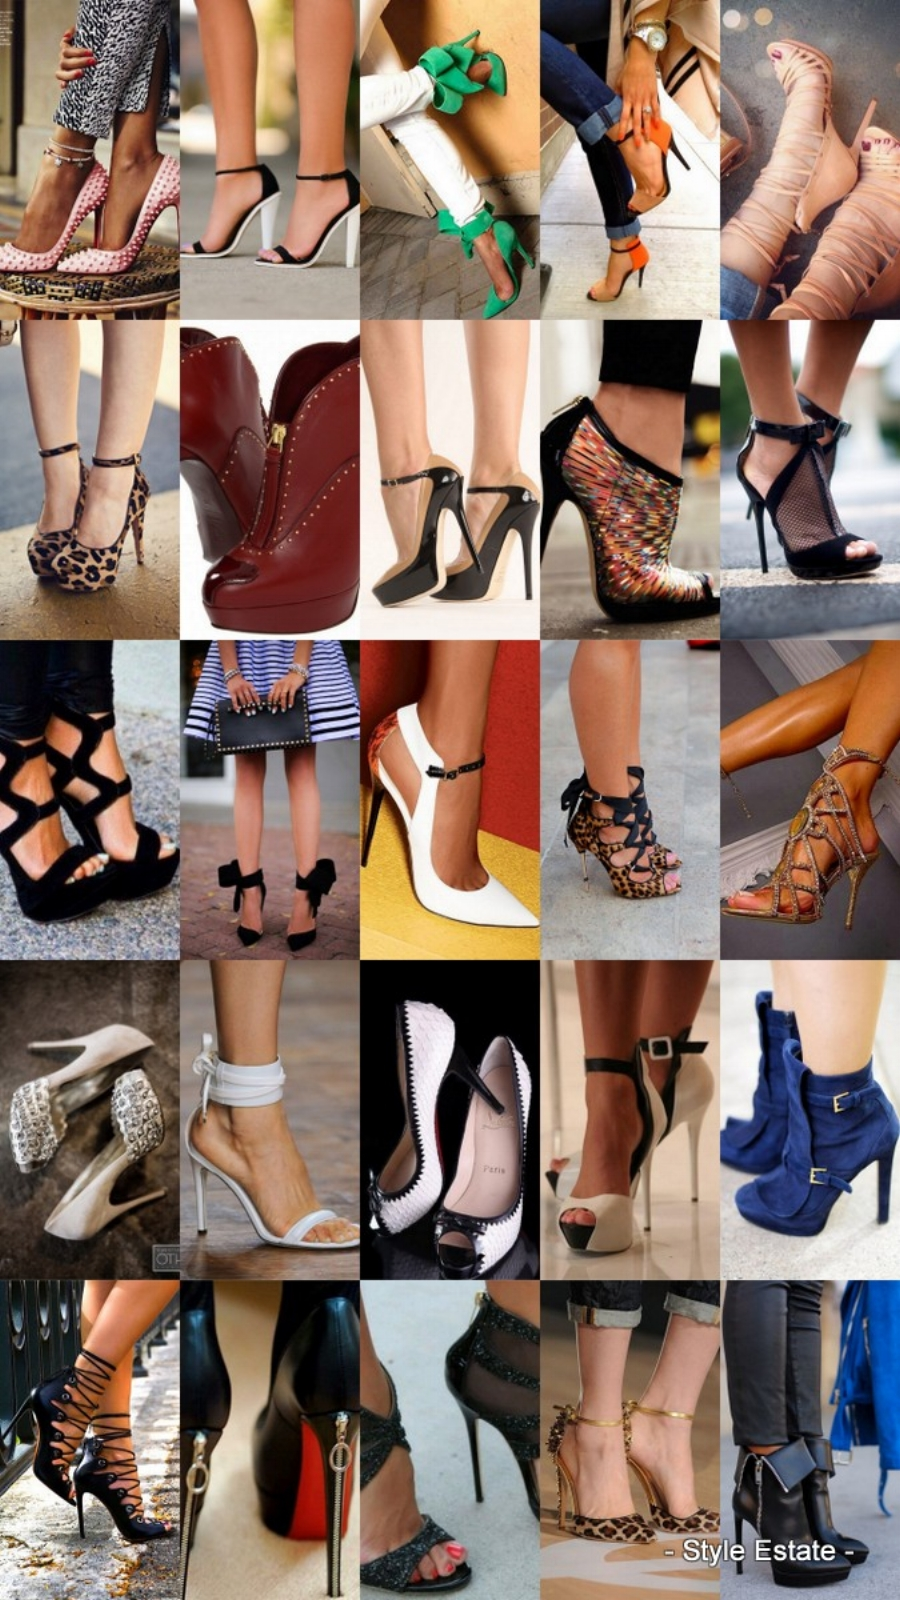 25 High Fashion High Heels on the Street that You Absolutely Must See - Style Estate => #IfTheShoeFits